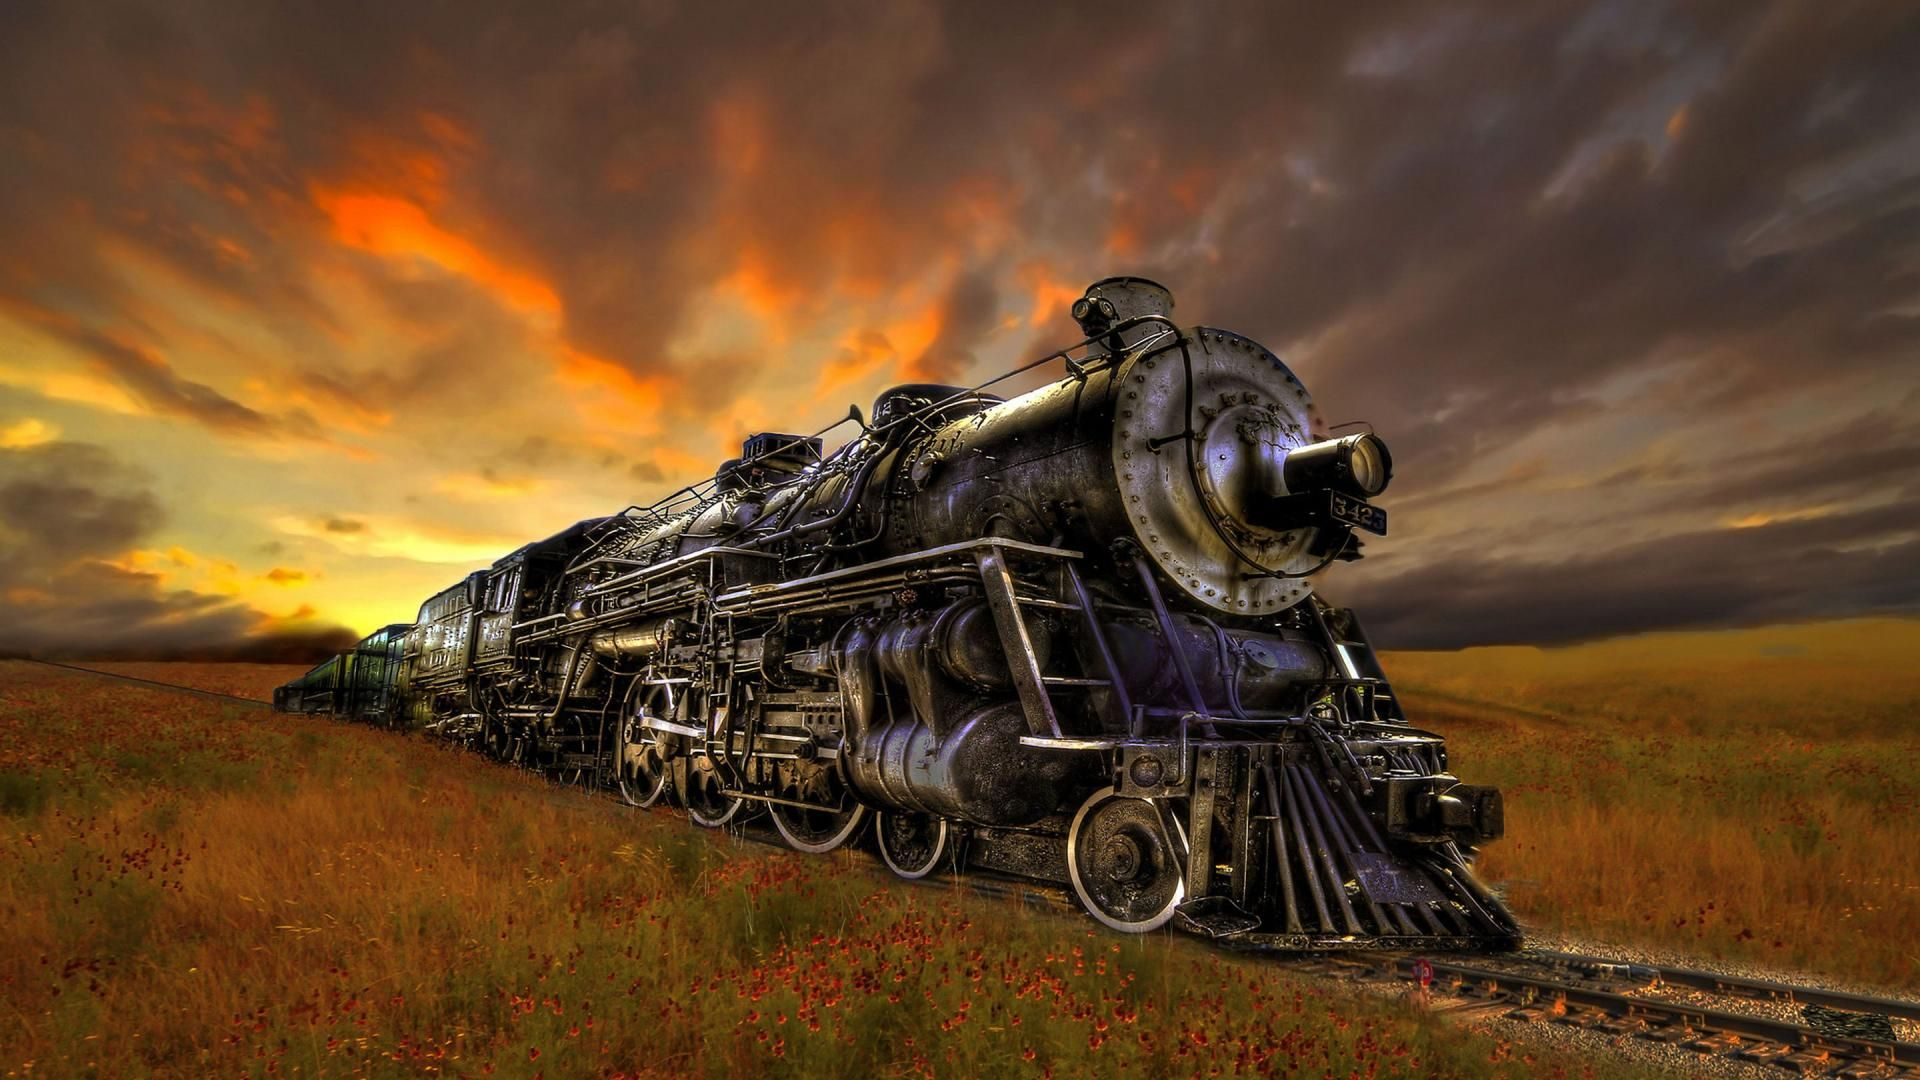 trains artwork HD Beautiful Steam Train Art Wallpaper